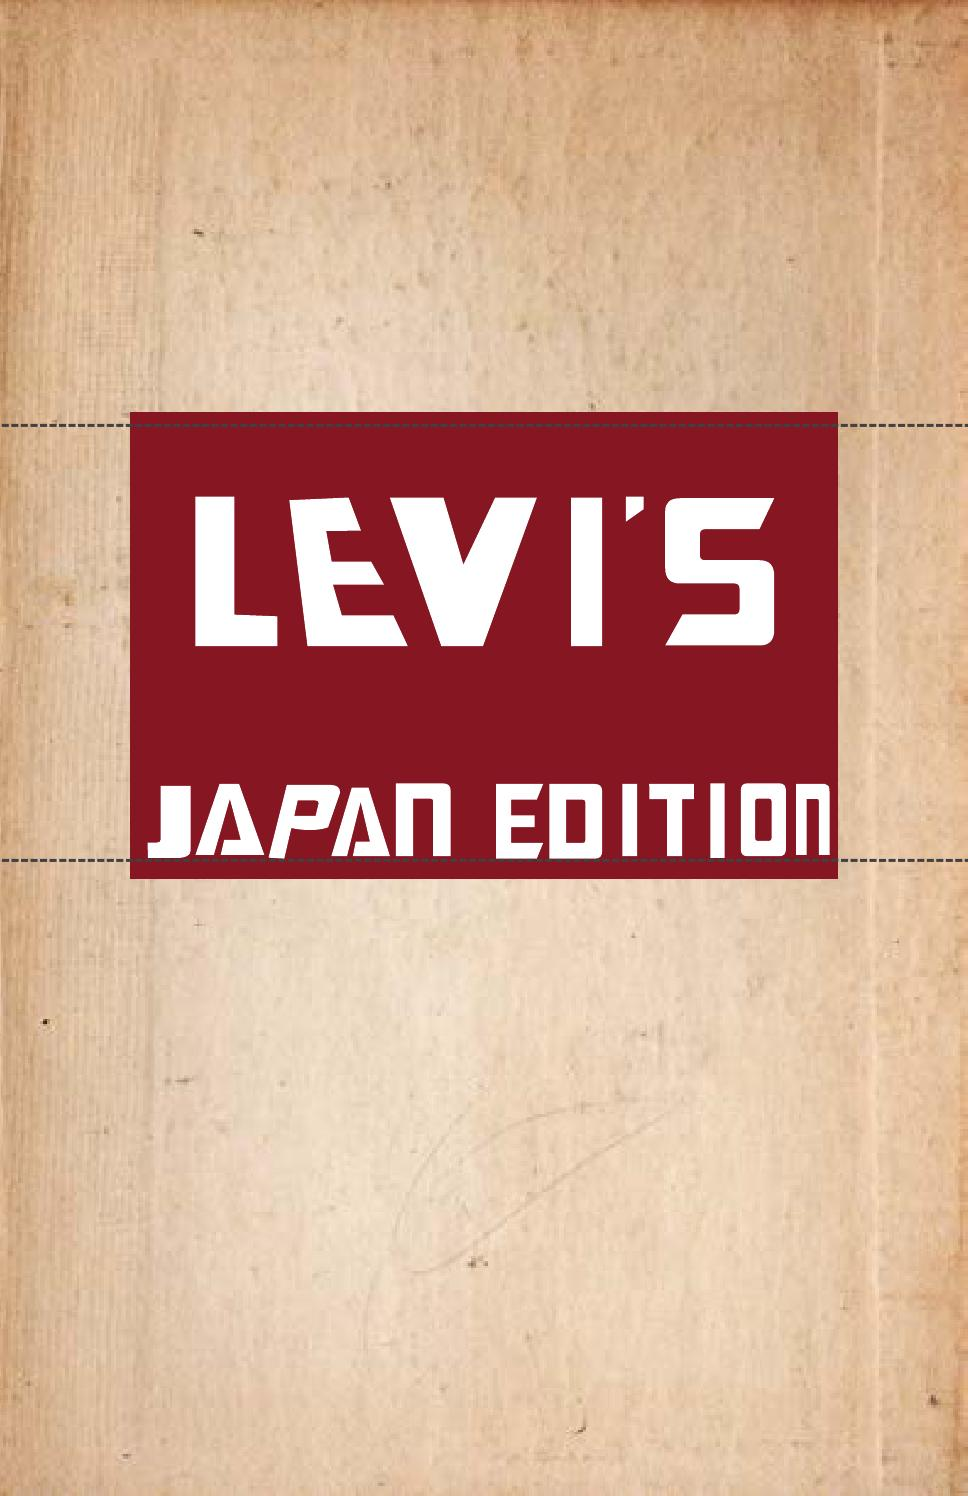 a market analysis for levi strauss and co vision This statistic shows the global net sales of levi strauss from 2005 to 2017  levi strauss & co is an american clothing company mostly known for its denim jeans brand levi's  market value .